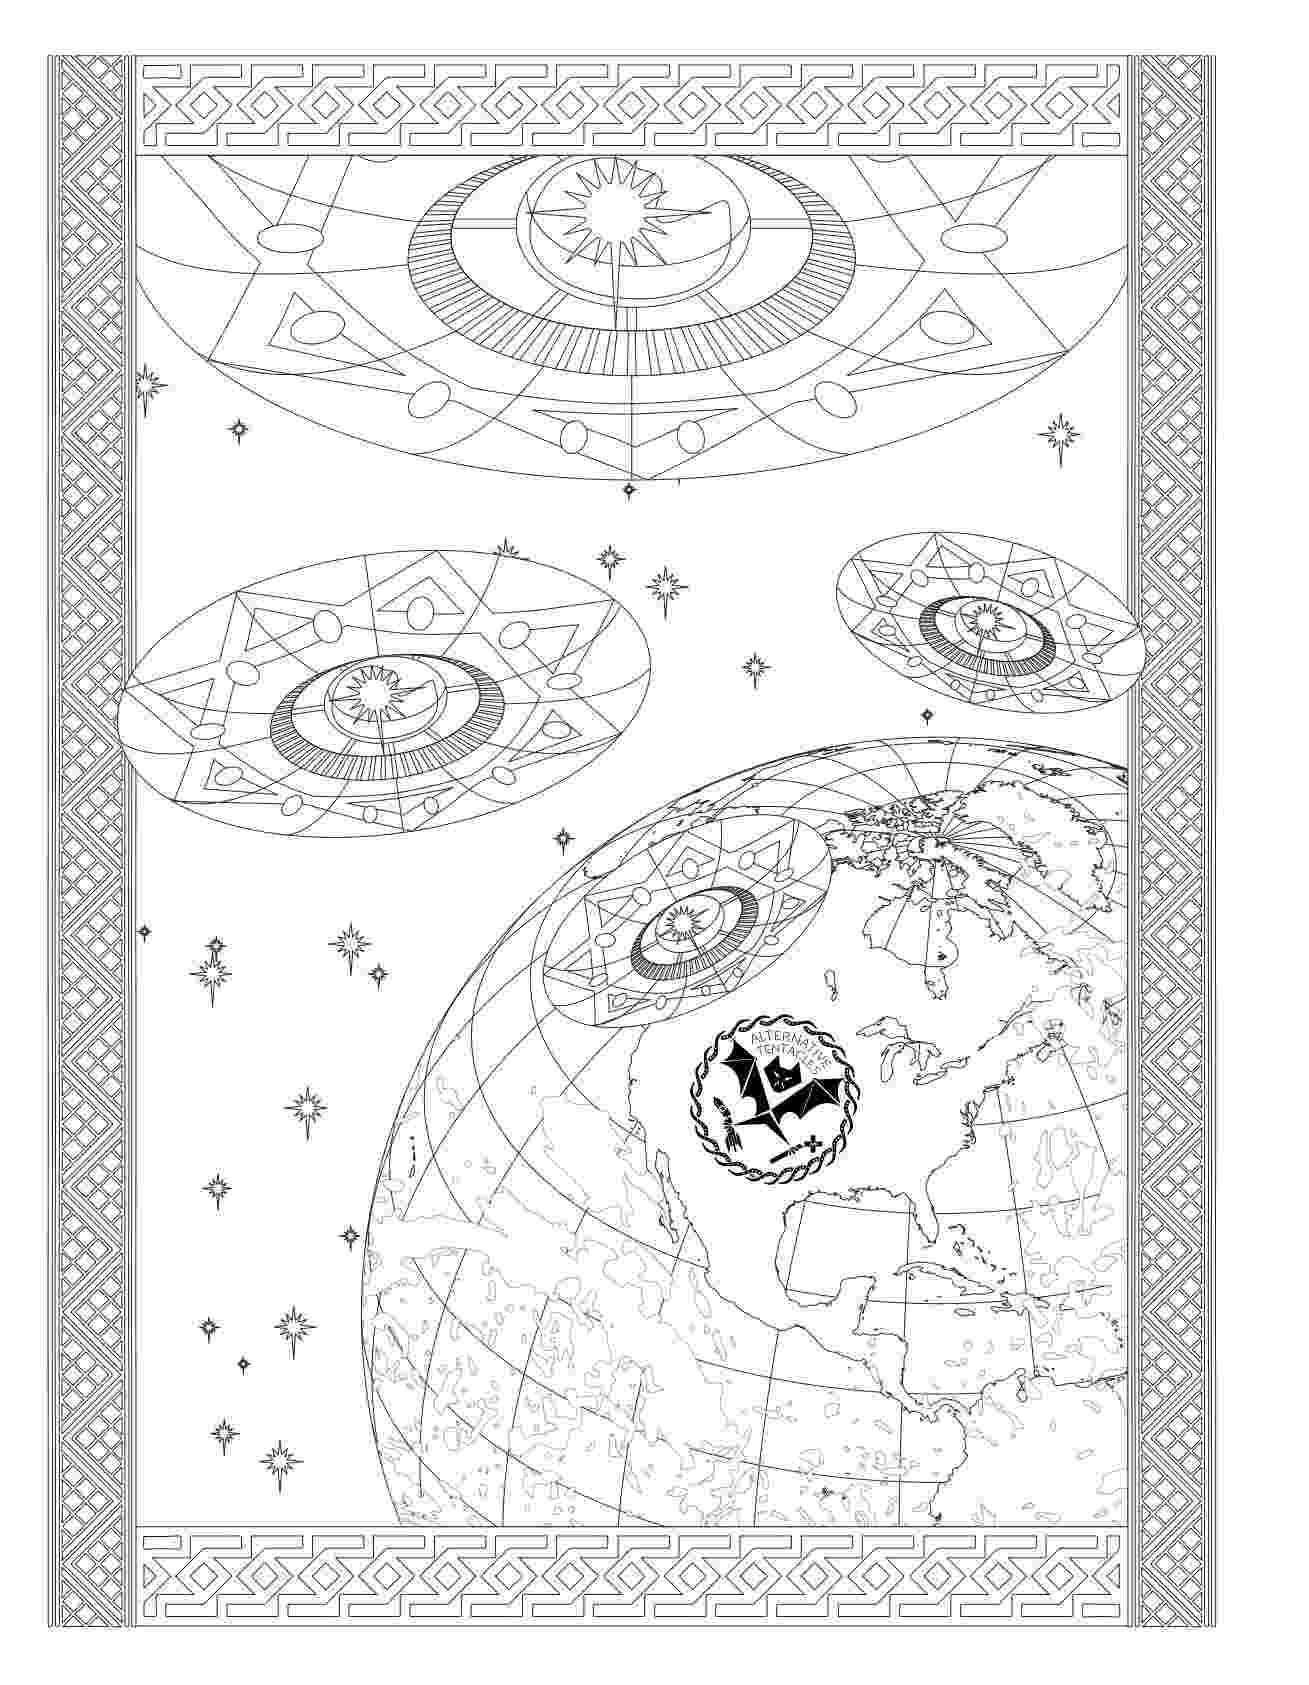 coloring book album free download pattern for coloring book with artistically house magic free album download coloring book